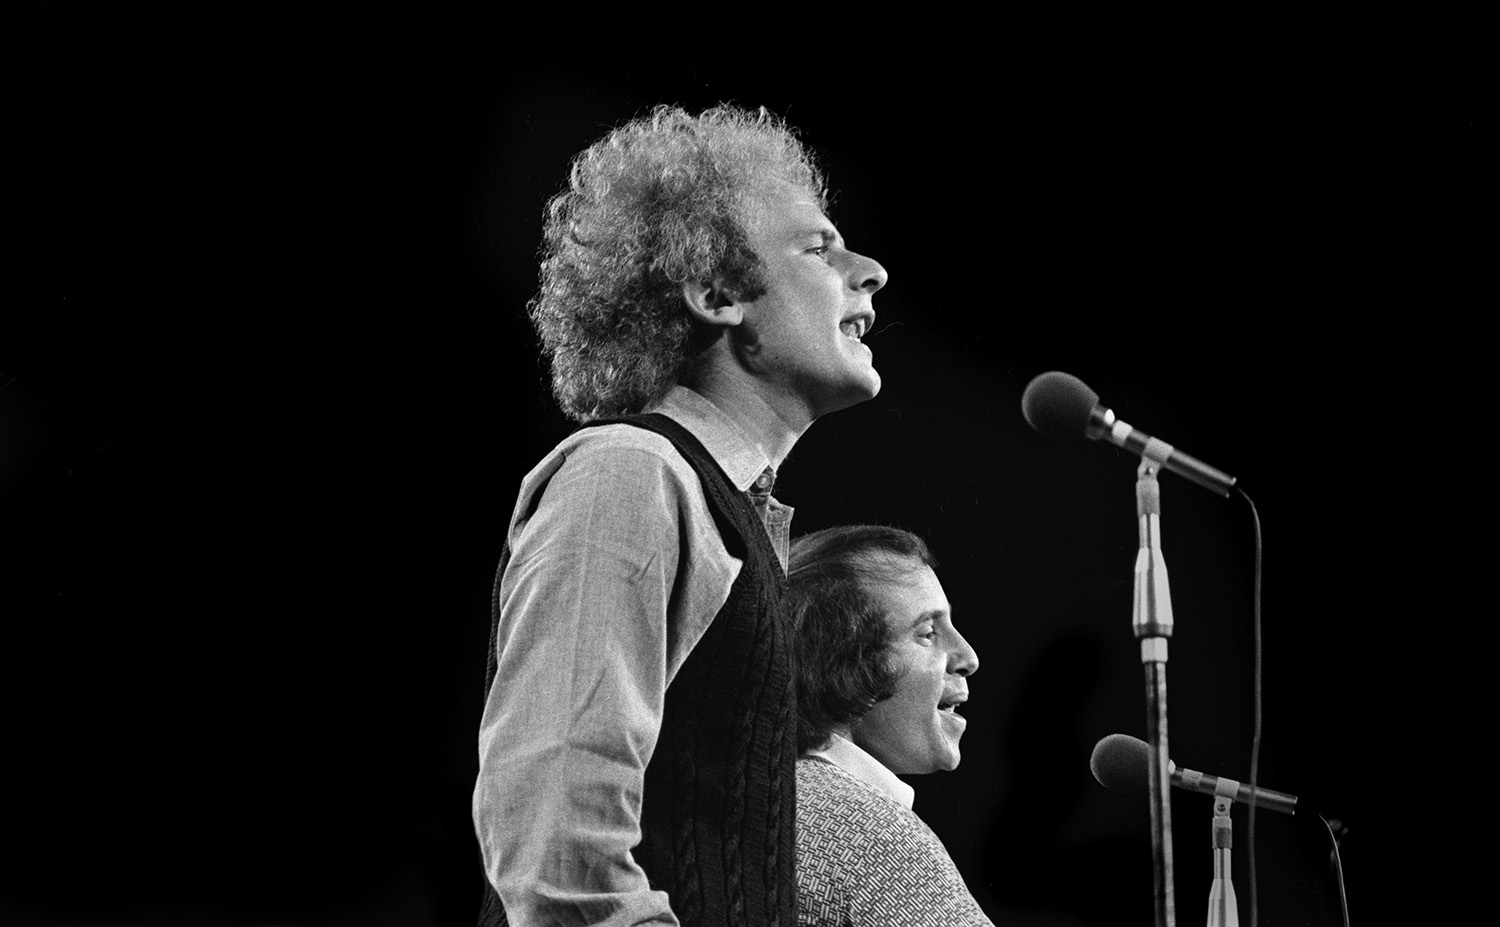 Simon and Garfunkel, 1972 #7